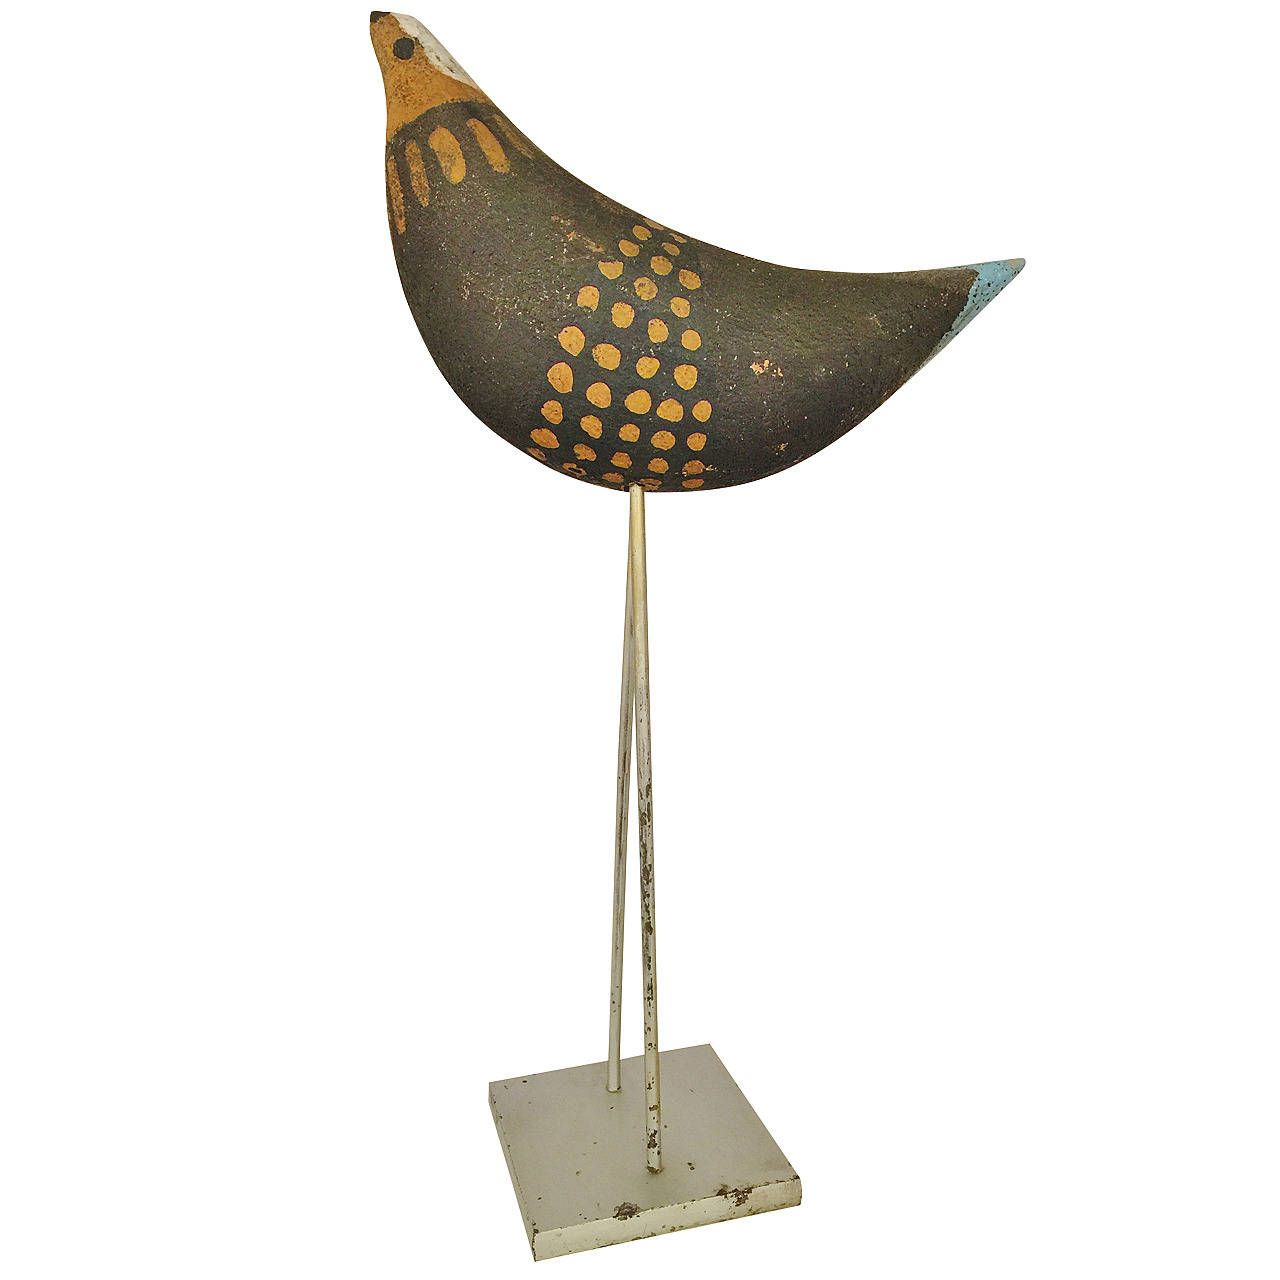 Aldo Londi for Bitossi Ceramic Bird on Stilts | From a unique collection of antique and modern pottery at https://www.1stdibs.com/furniture/dining-entertaining/pottery/